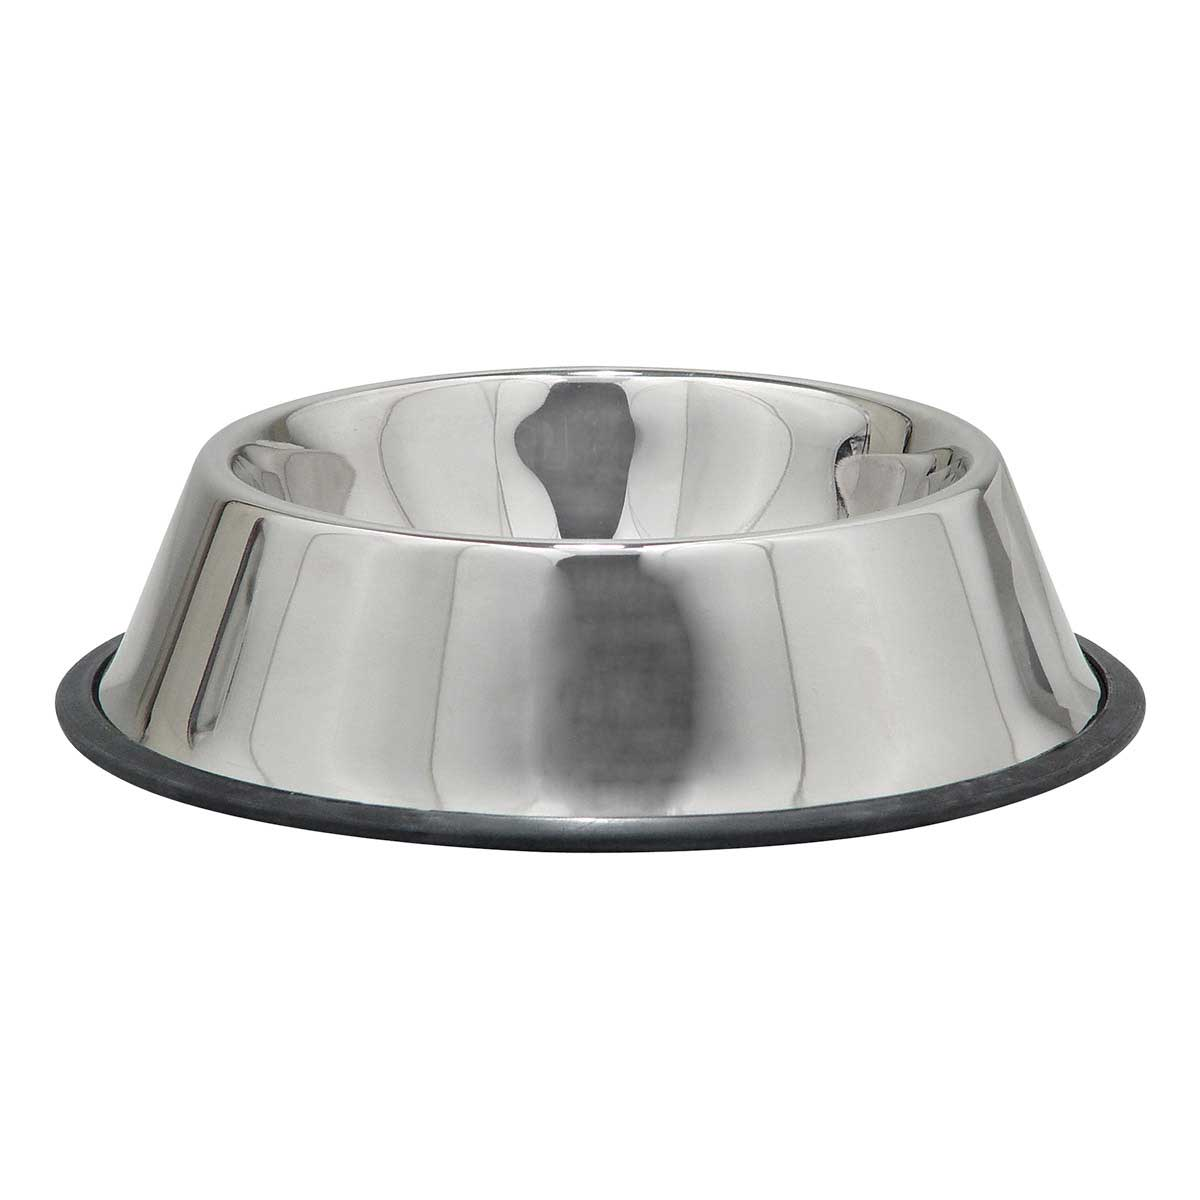 Indipets No-Tip Stainless Steel Dish for VERY EXTRA LARGE Dogs 96 oz